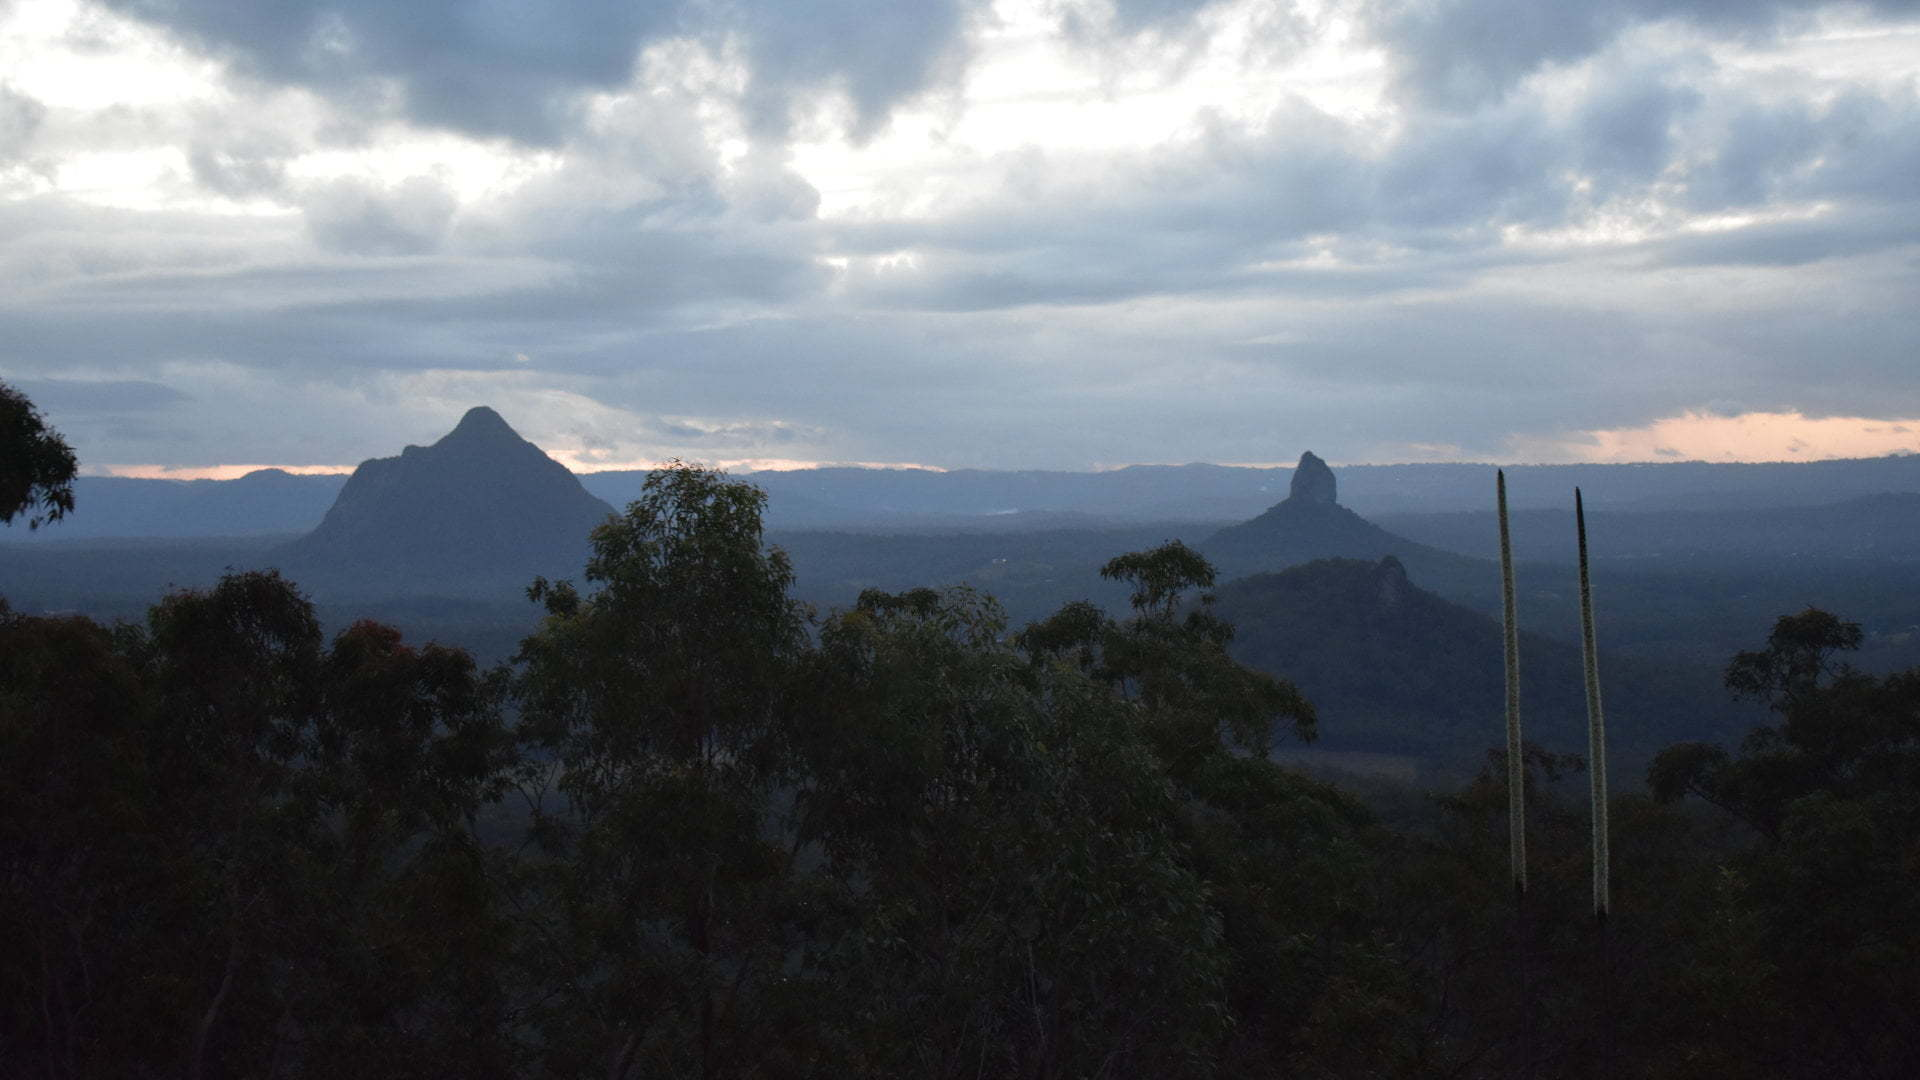 View from the summit of Mt Beerburrum. The lookout has views in all directions of Mt Tibberoowuccum, Mt Coonowrin, Mt Beerwah, Mt Tibrogargan, Wild Horse Mountain, Mt Tunbubudla, Bribie Island and the mountain ranges.